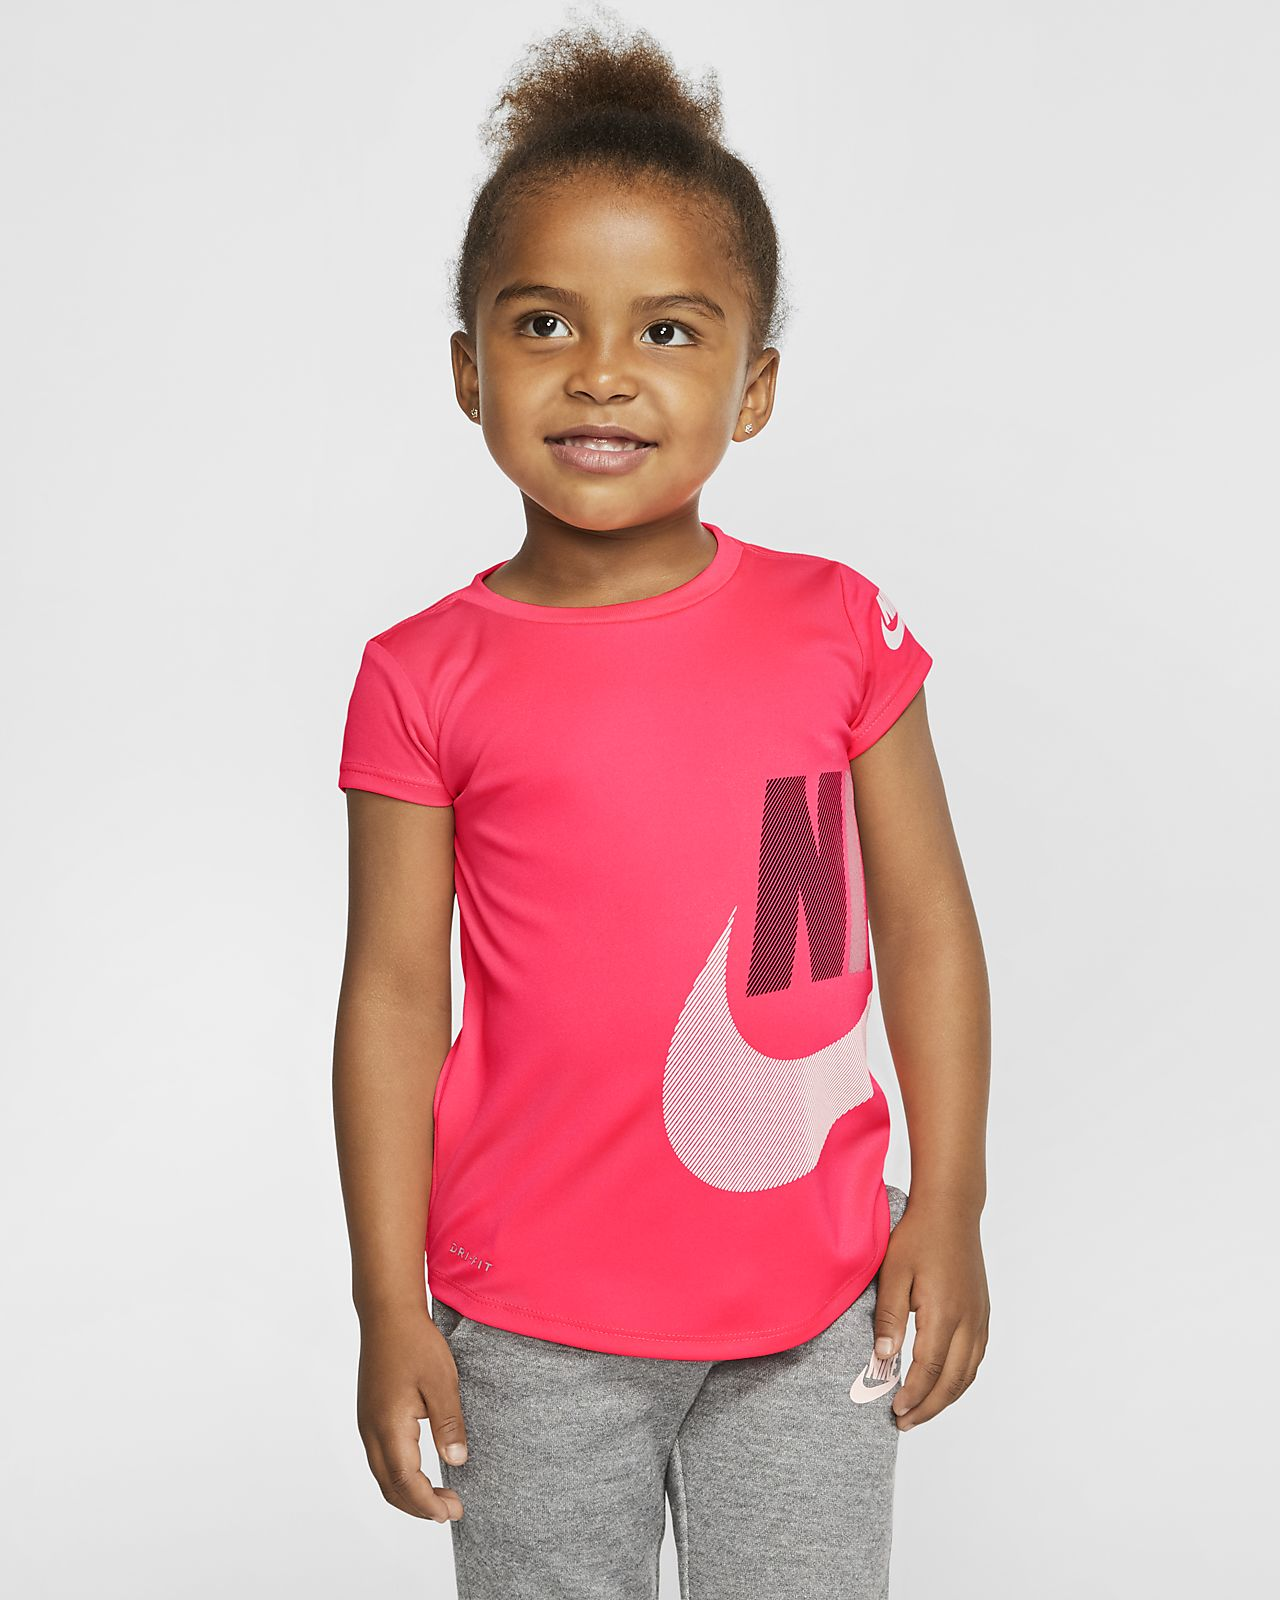 Nike Dri-FIT Toddler Short-Sleeve T-Shirt